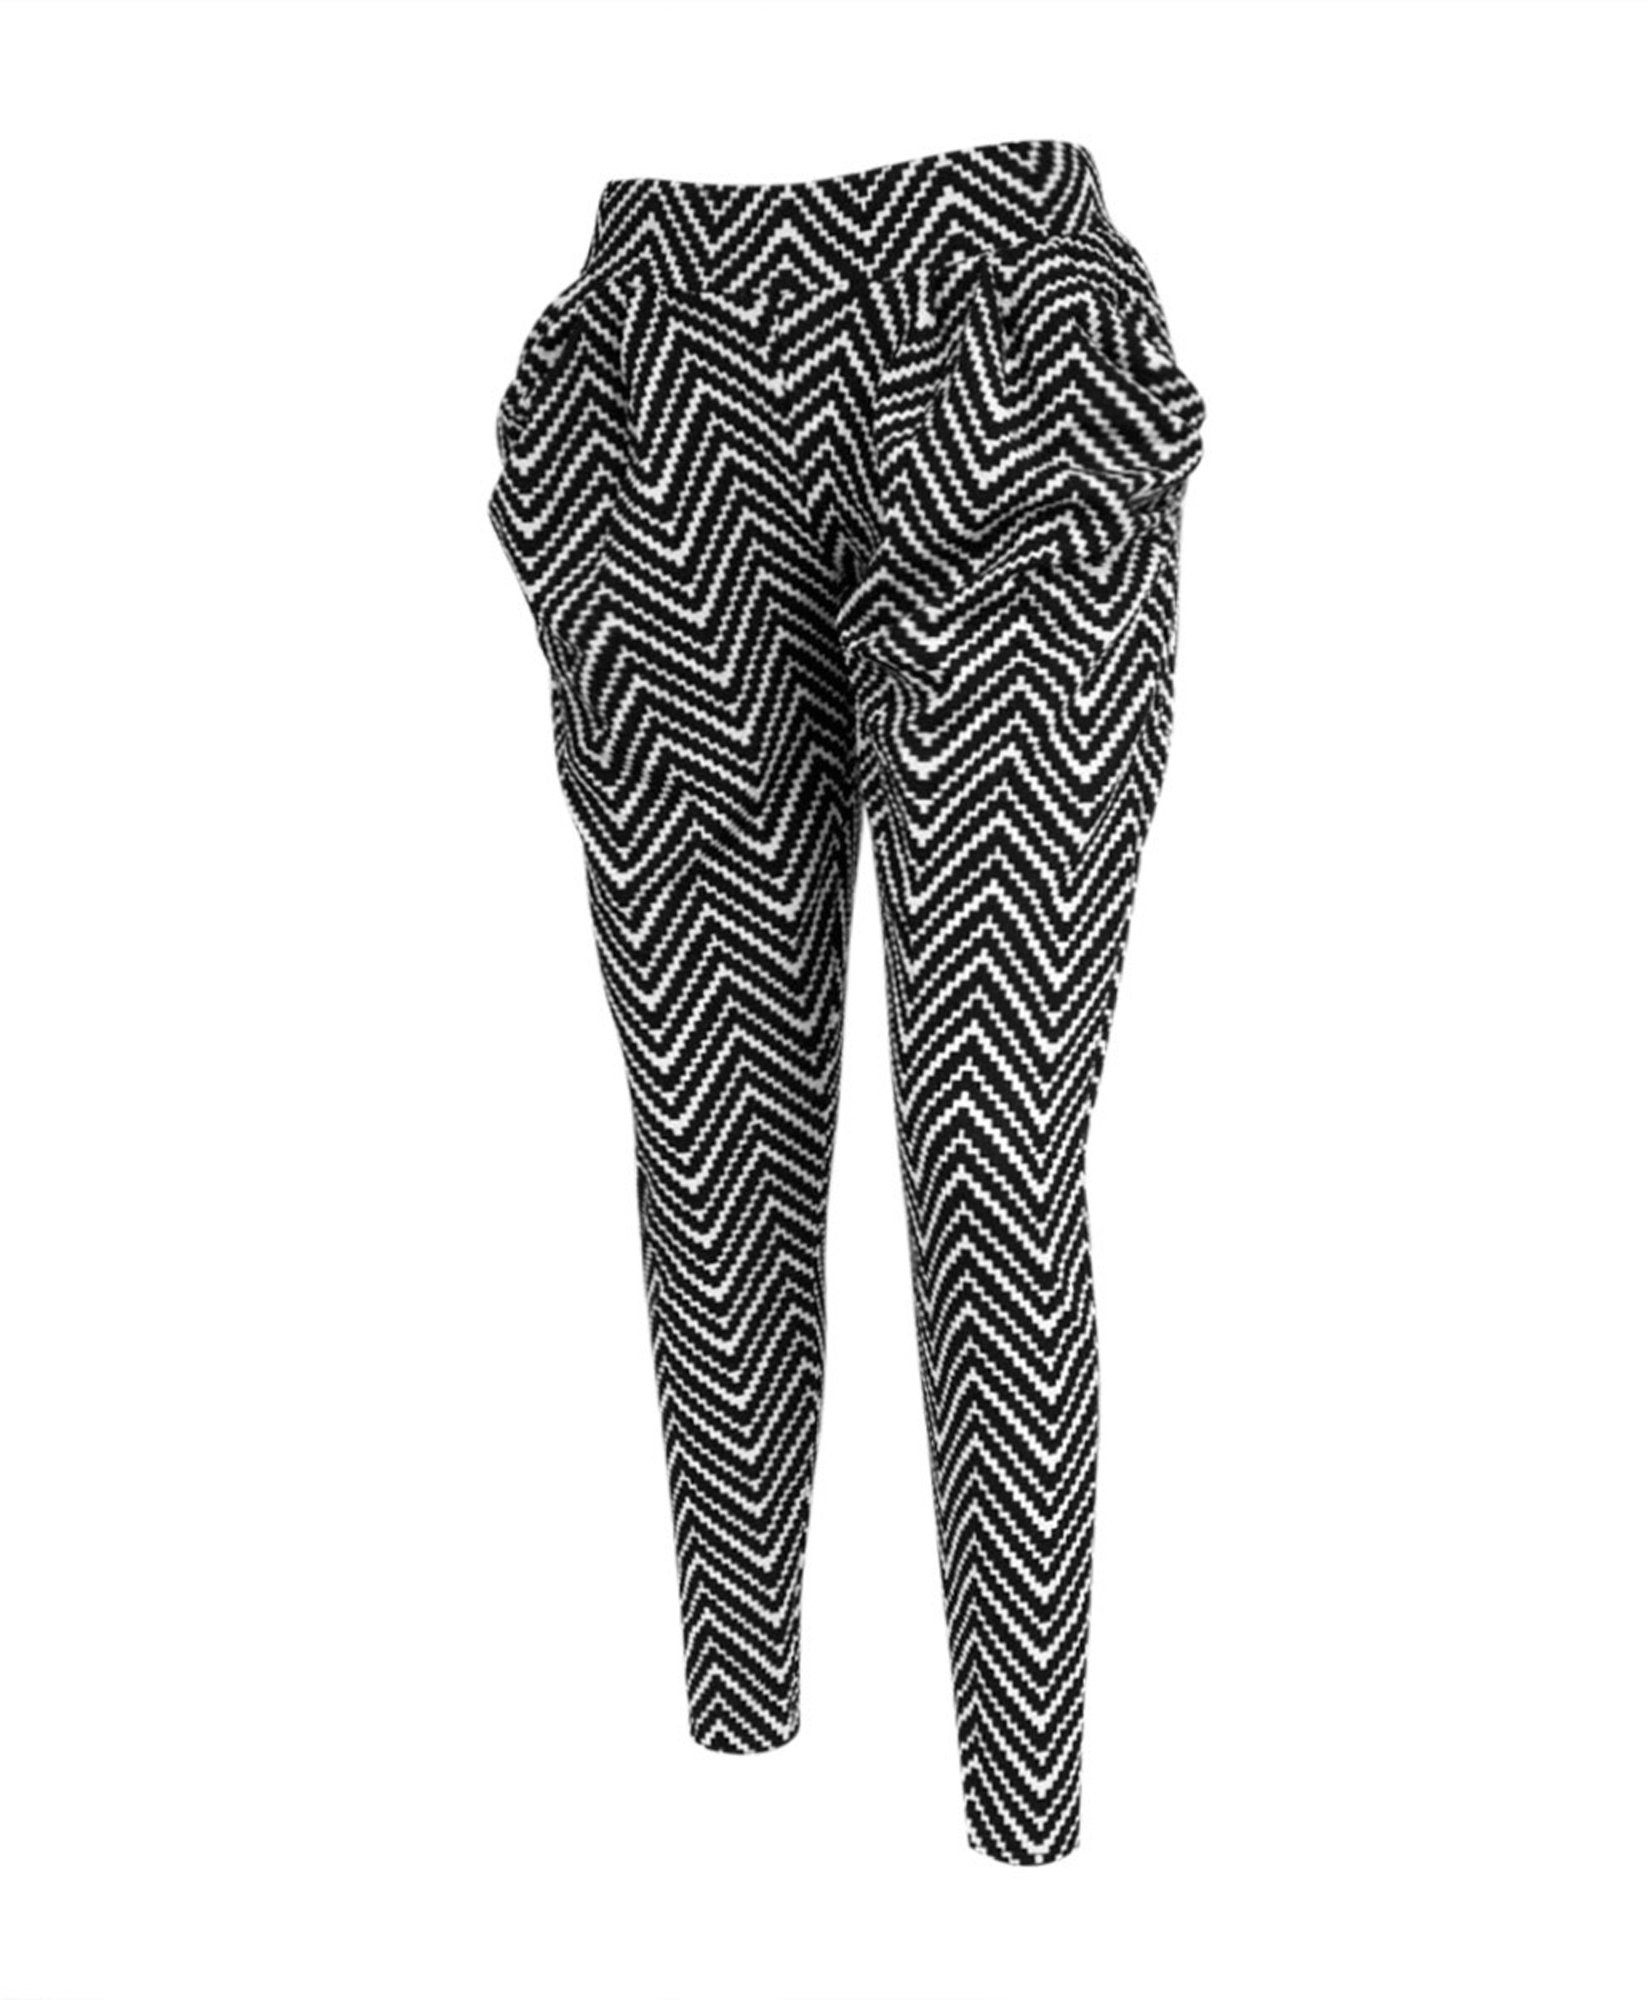 boxed-gifts Zigzag Harem Pants (S/M)